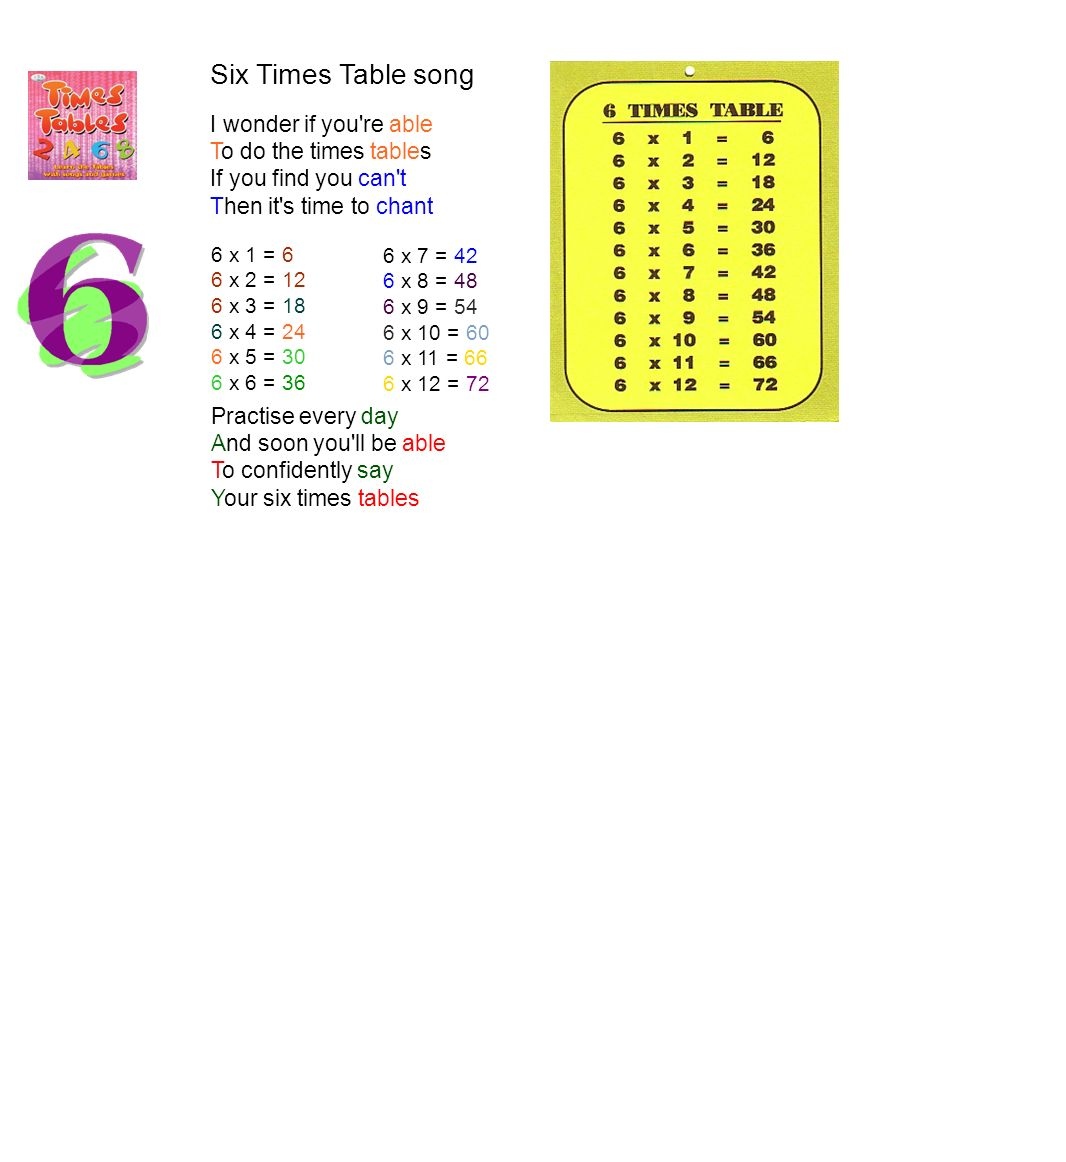 Song to learn multiplication tables images periodic table images multiplication tables song images periodic table images multiplication tables song 1 12 choice image periodic table gamestrikefo Image collections